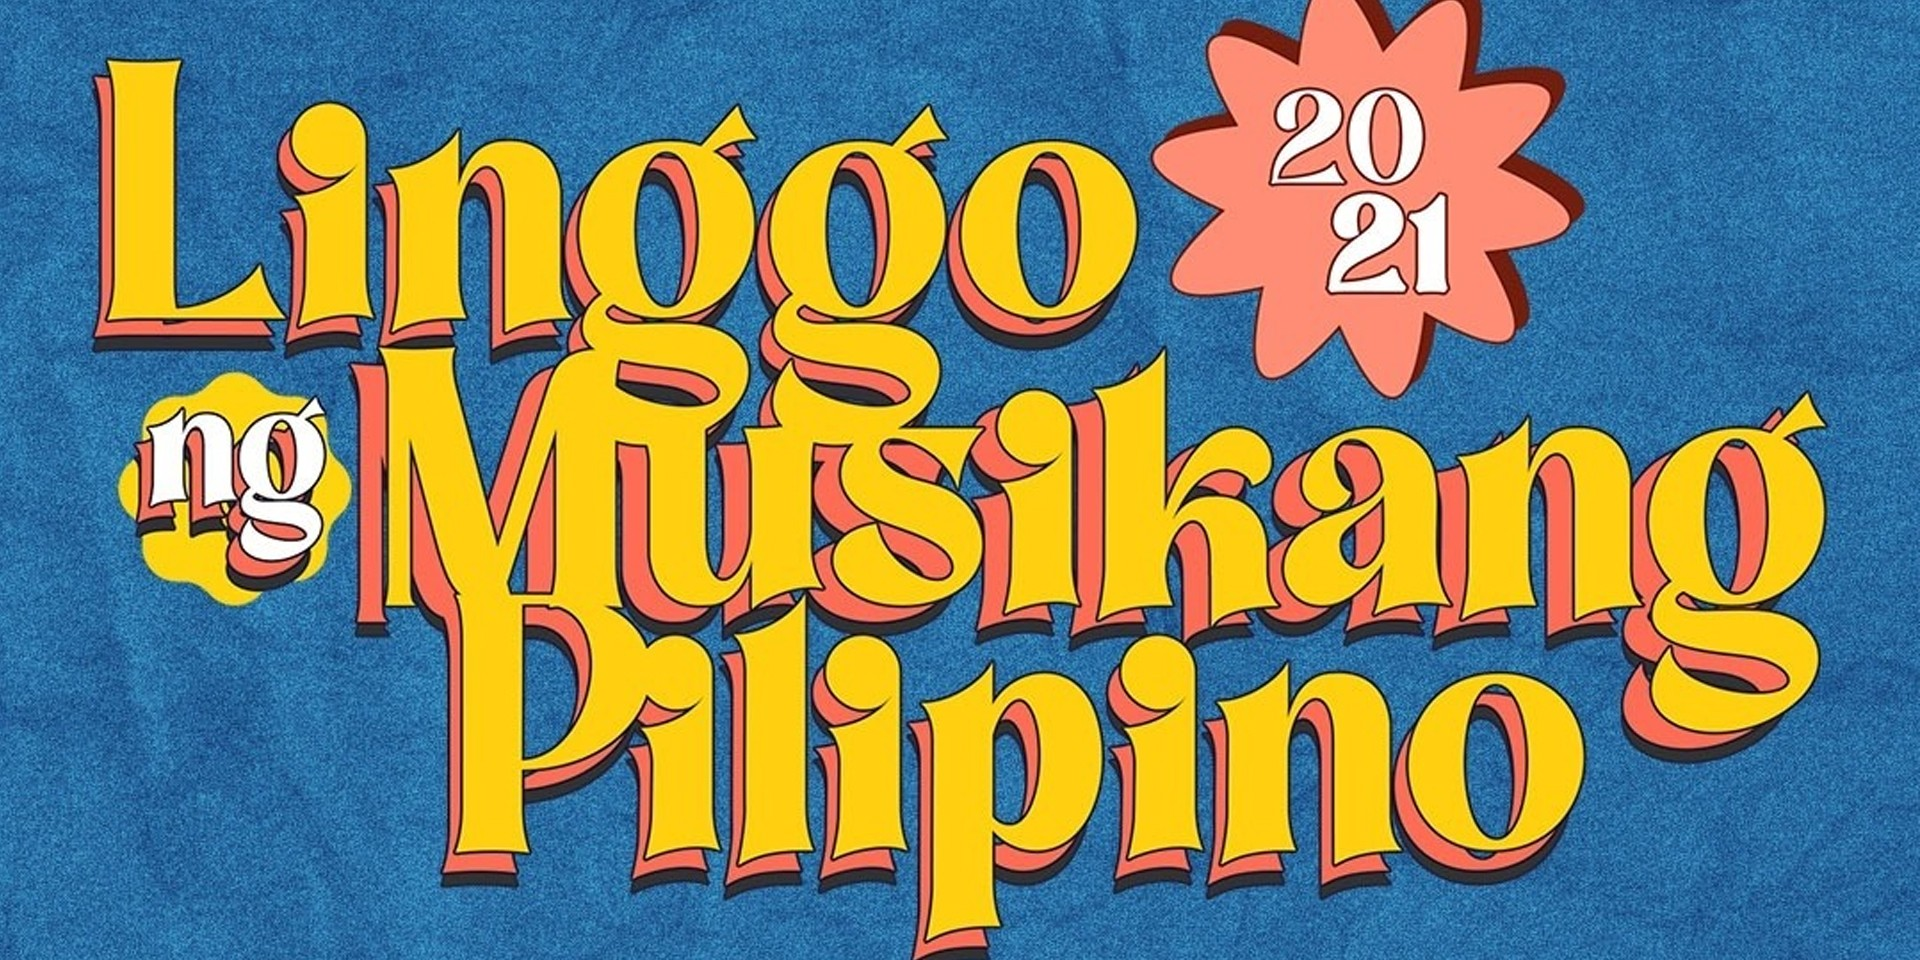 Linggo Ng Musikang Pilipino returns to the digital stage with diverse programs and shows featuring Sandwich, Kitchie Nadal, Christian Bautista, and more